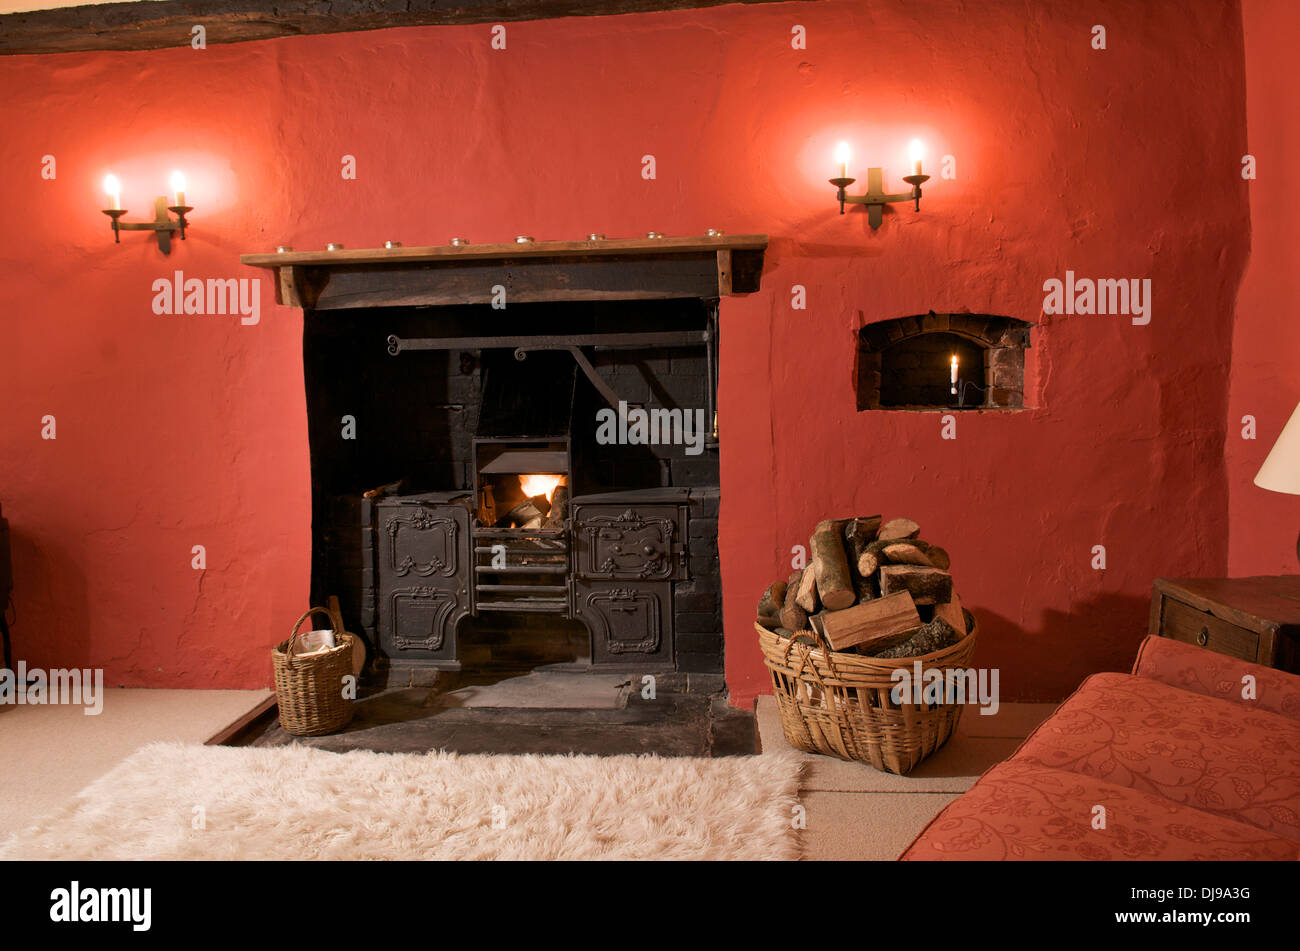 Old fashioned range in fireplace of holiday cottage, Wales, UK - Old Fashioned Range In Fireplace Of Holiday Cottage, Wales, UK